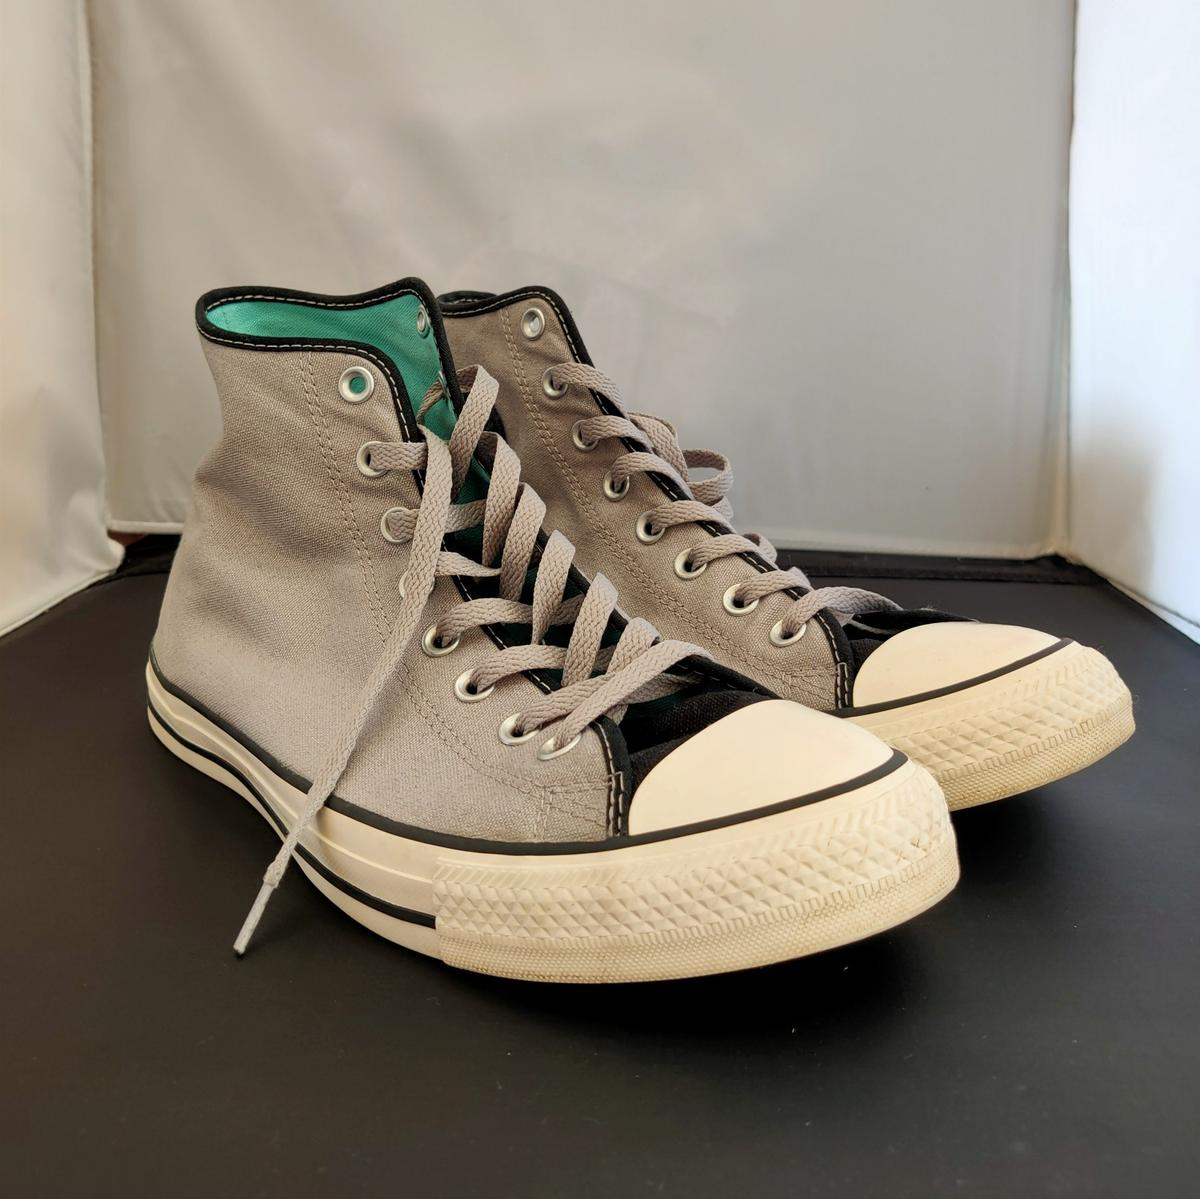 Grey and black Converse trainers. Used but in very good condition.